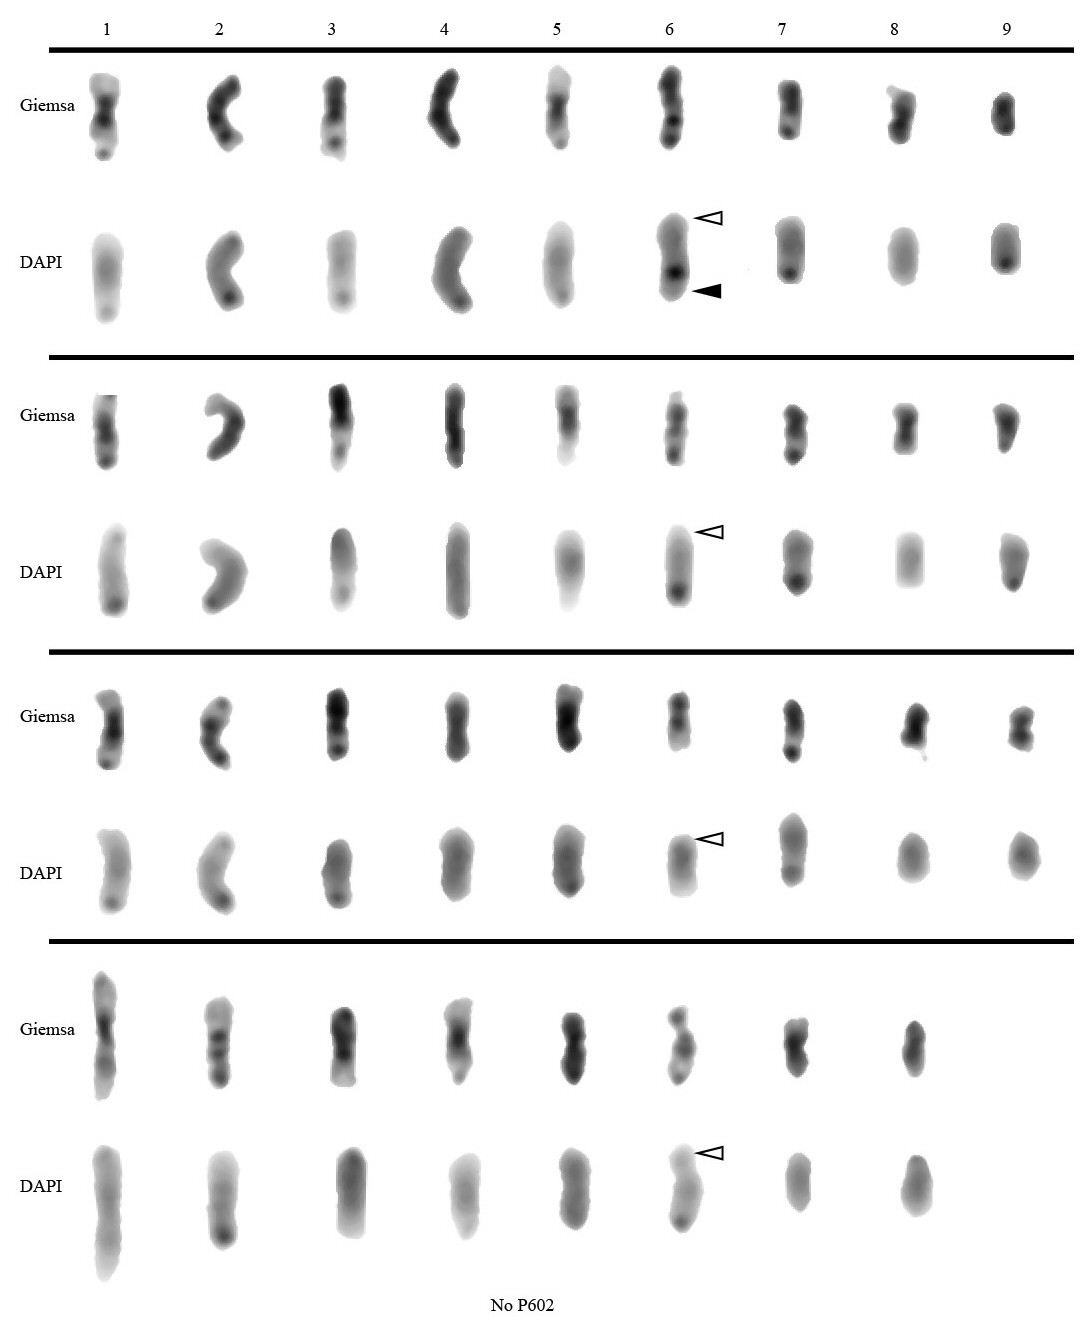 http://static-content.springer.com/image/art%3A10.1186%2F1471-2148-11-289/MediaObjects/12862_2011_1883_Fig7_HTML.jpg